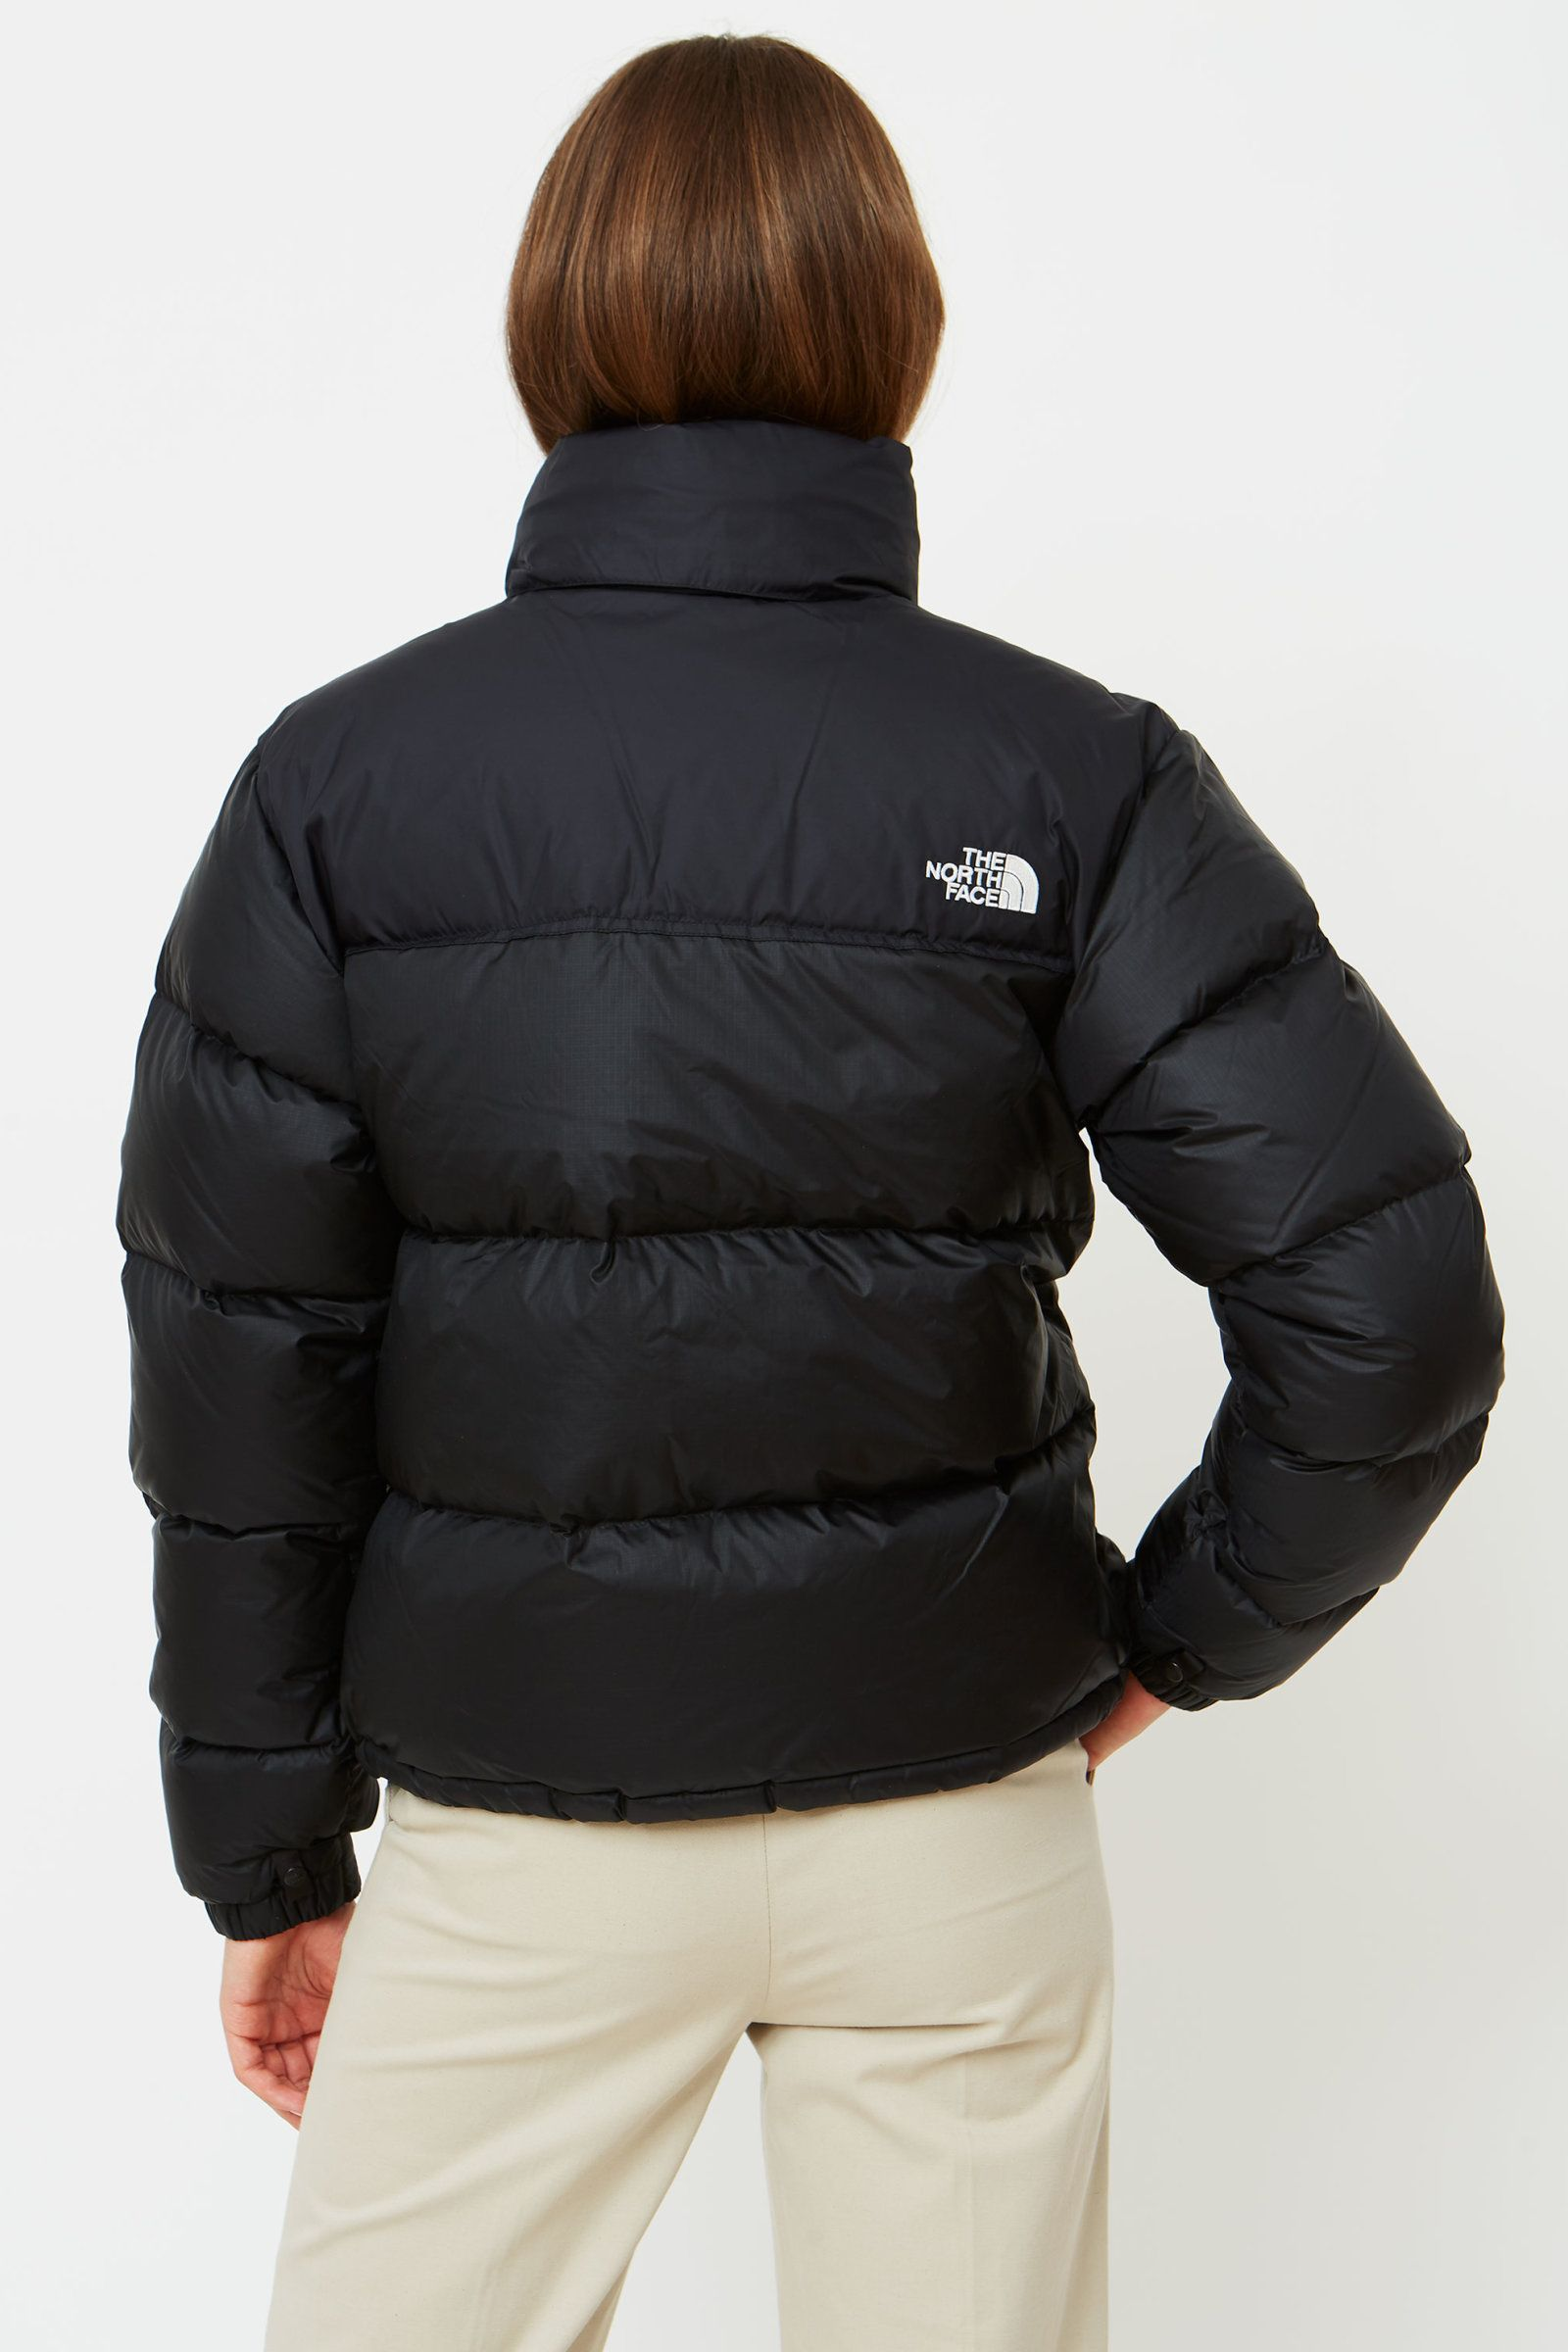 97f09b3ee7 Wood Wood - The North Face - Women s 1996 Retro Nuptse Jacket in Black